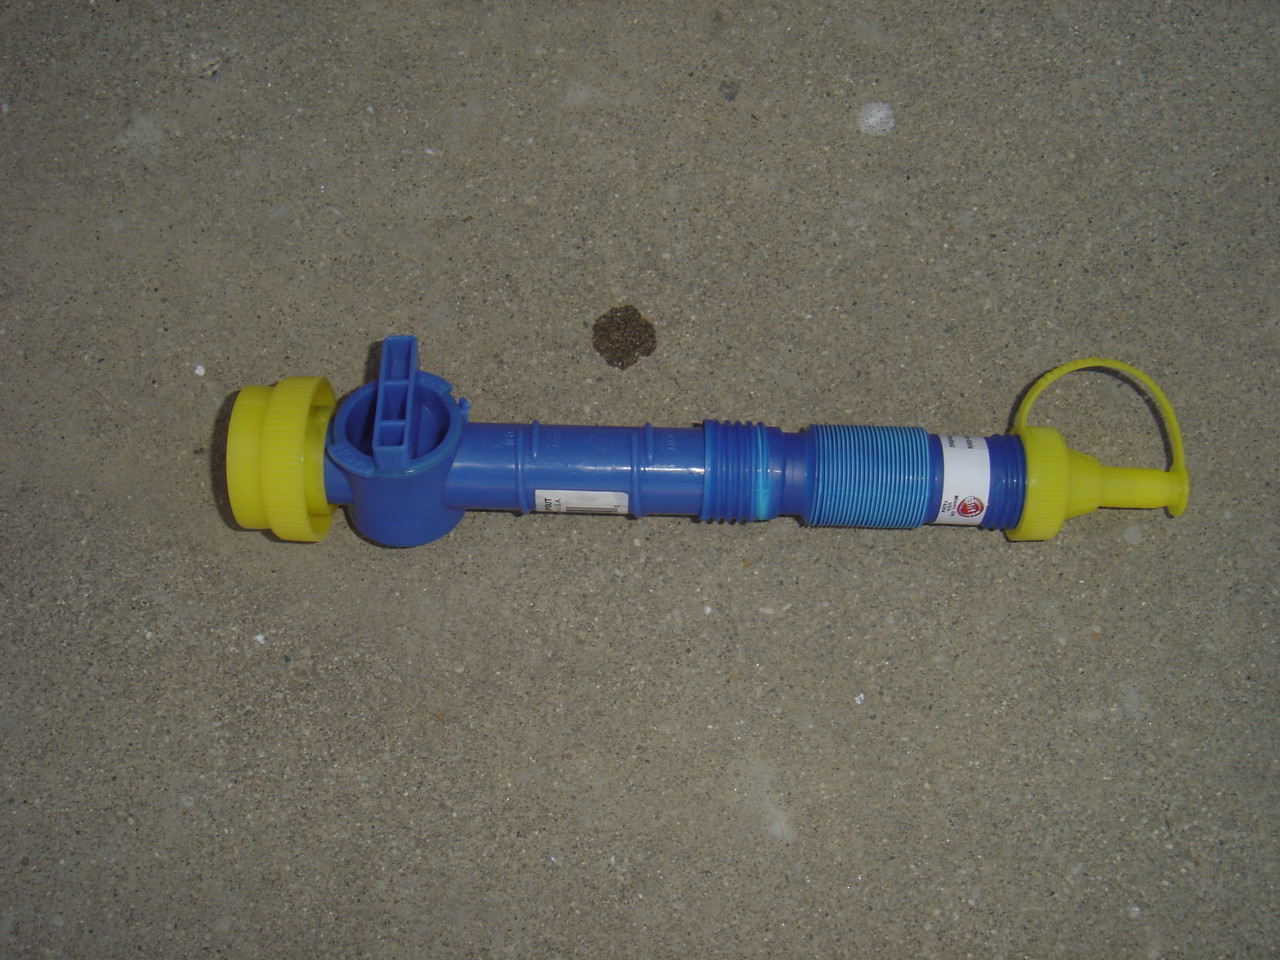 This is a spout and flexible tube that can be used to add anti-freeze to the fresh water tank.